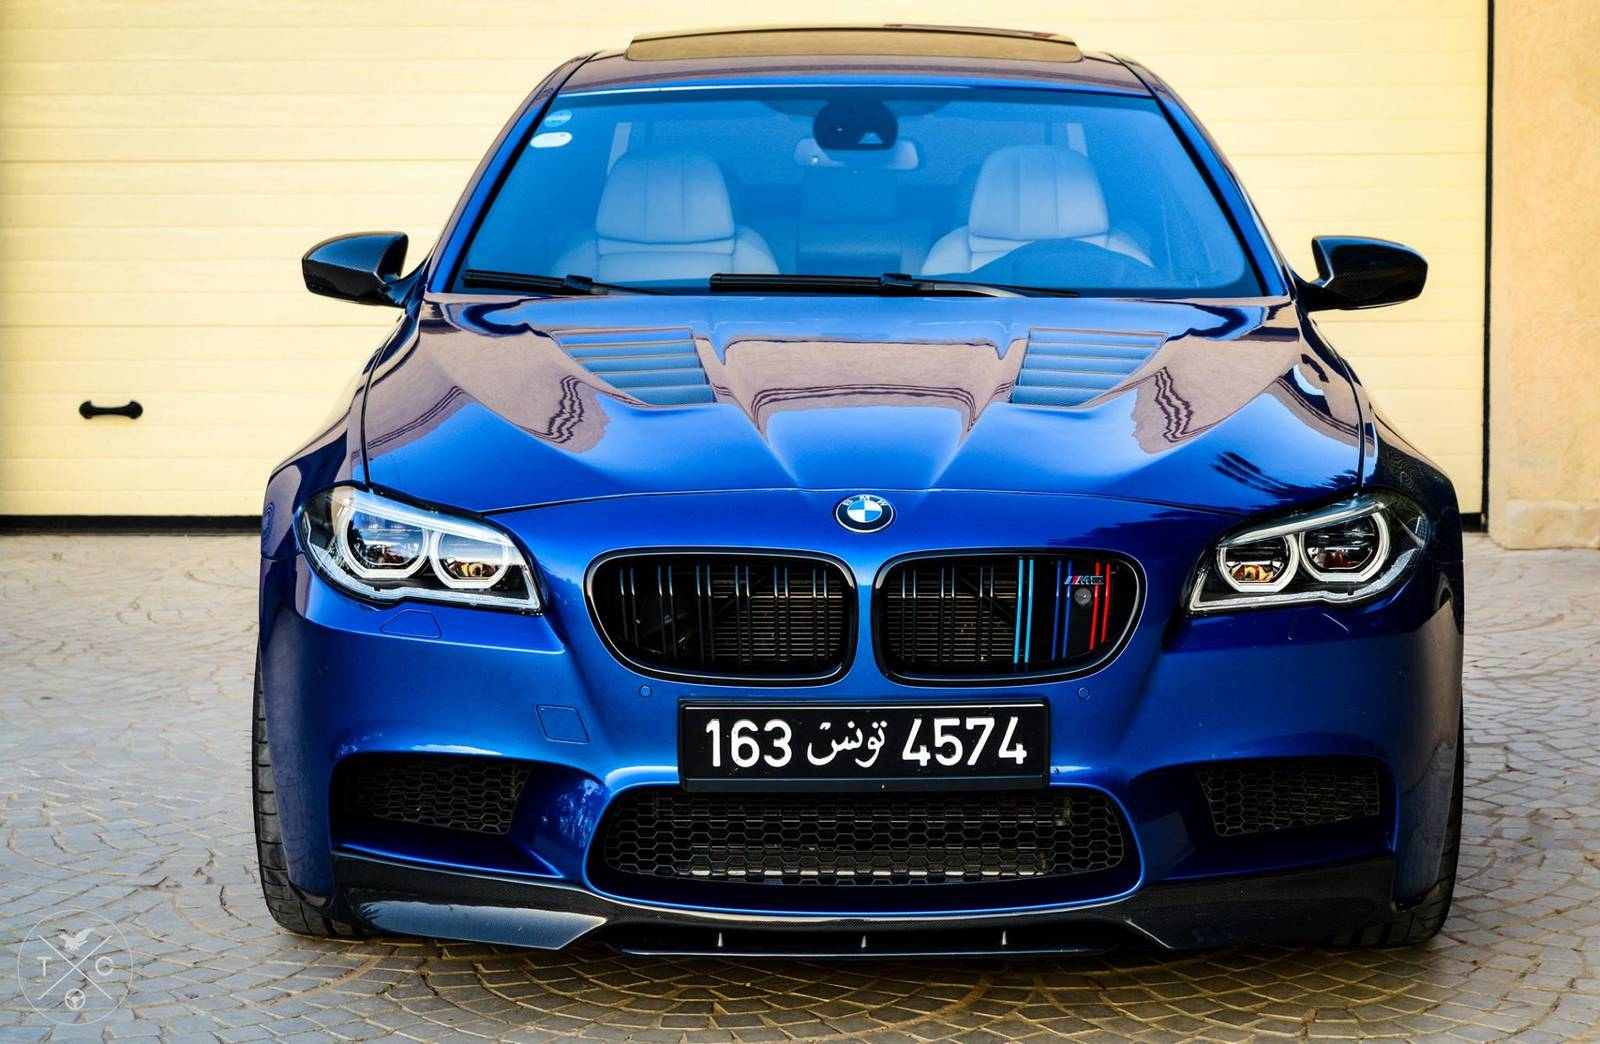 740hp manhart bmw f10 m5 most powerful bmw in tunisia. Black Bedroom Furniture Sets. Home Design Ideas